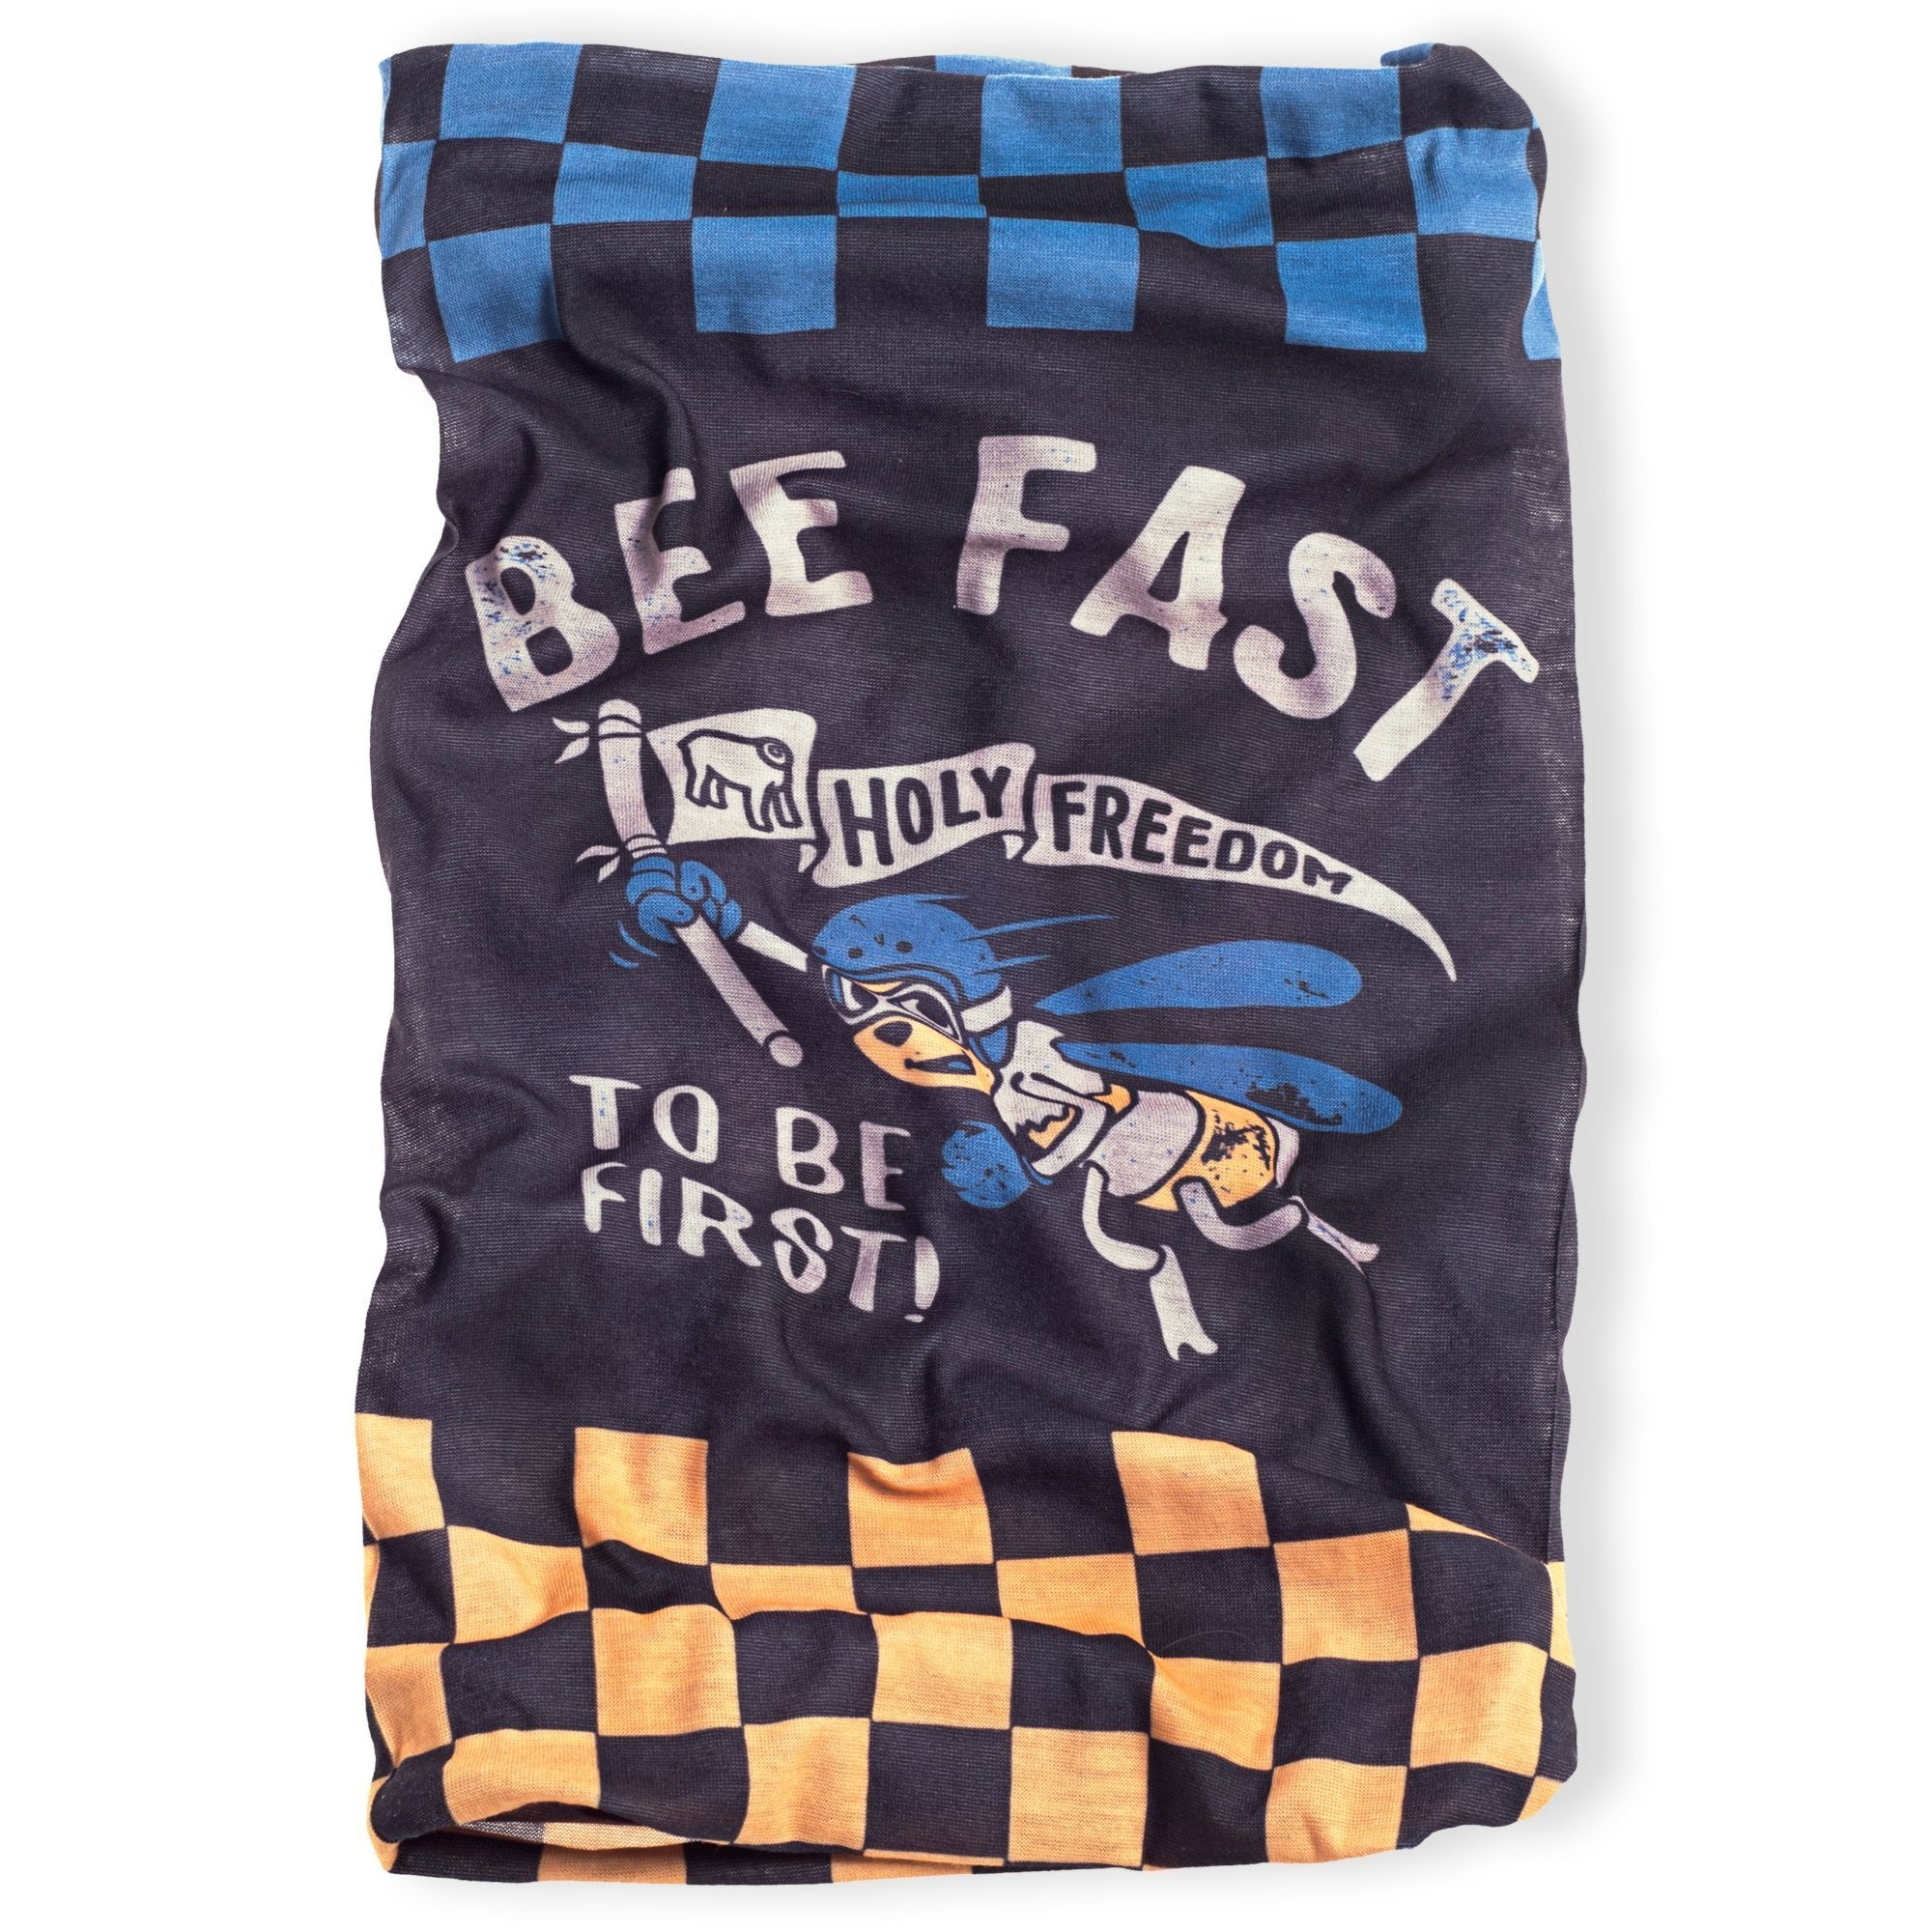 Holy Freedom - Holy Freedom Bee Fast Bandana Tube - Bandana's and Tubes - Salt Flats Clothing